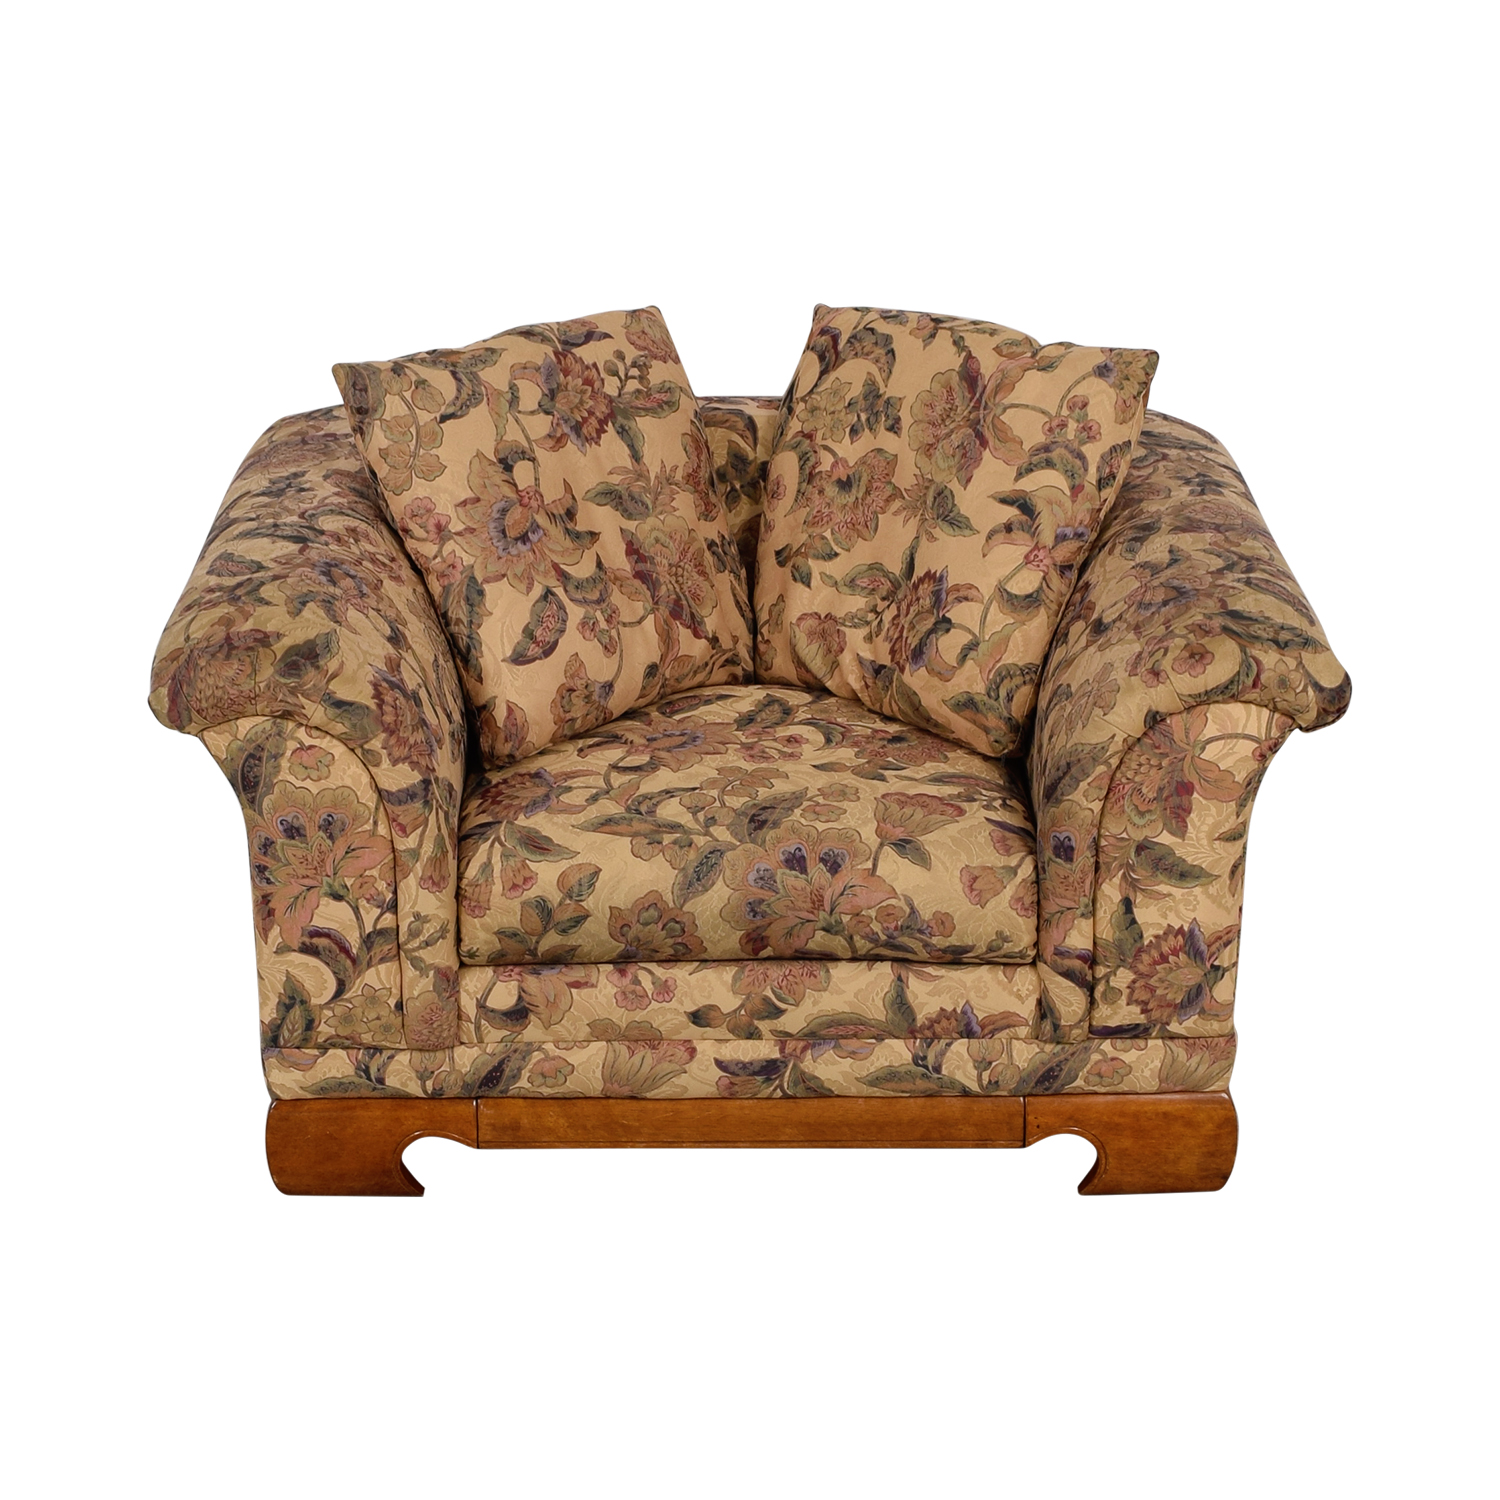 Pleasant 90 Off Sealy Sealy Furniture Floral Print Accent Chair Chairs Pdpeps Interior Chair Design Pdpepsorg